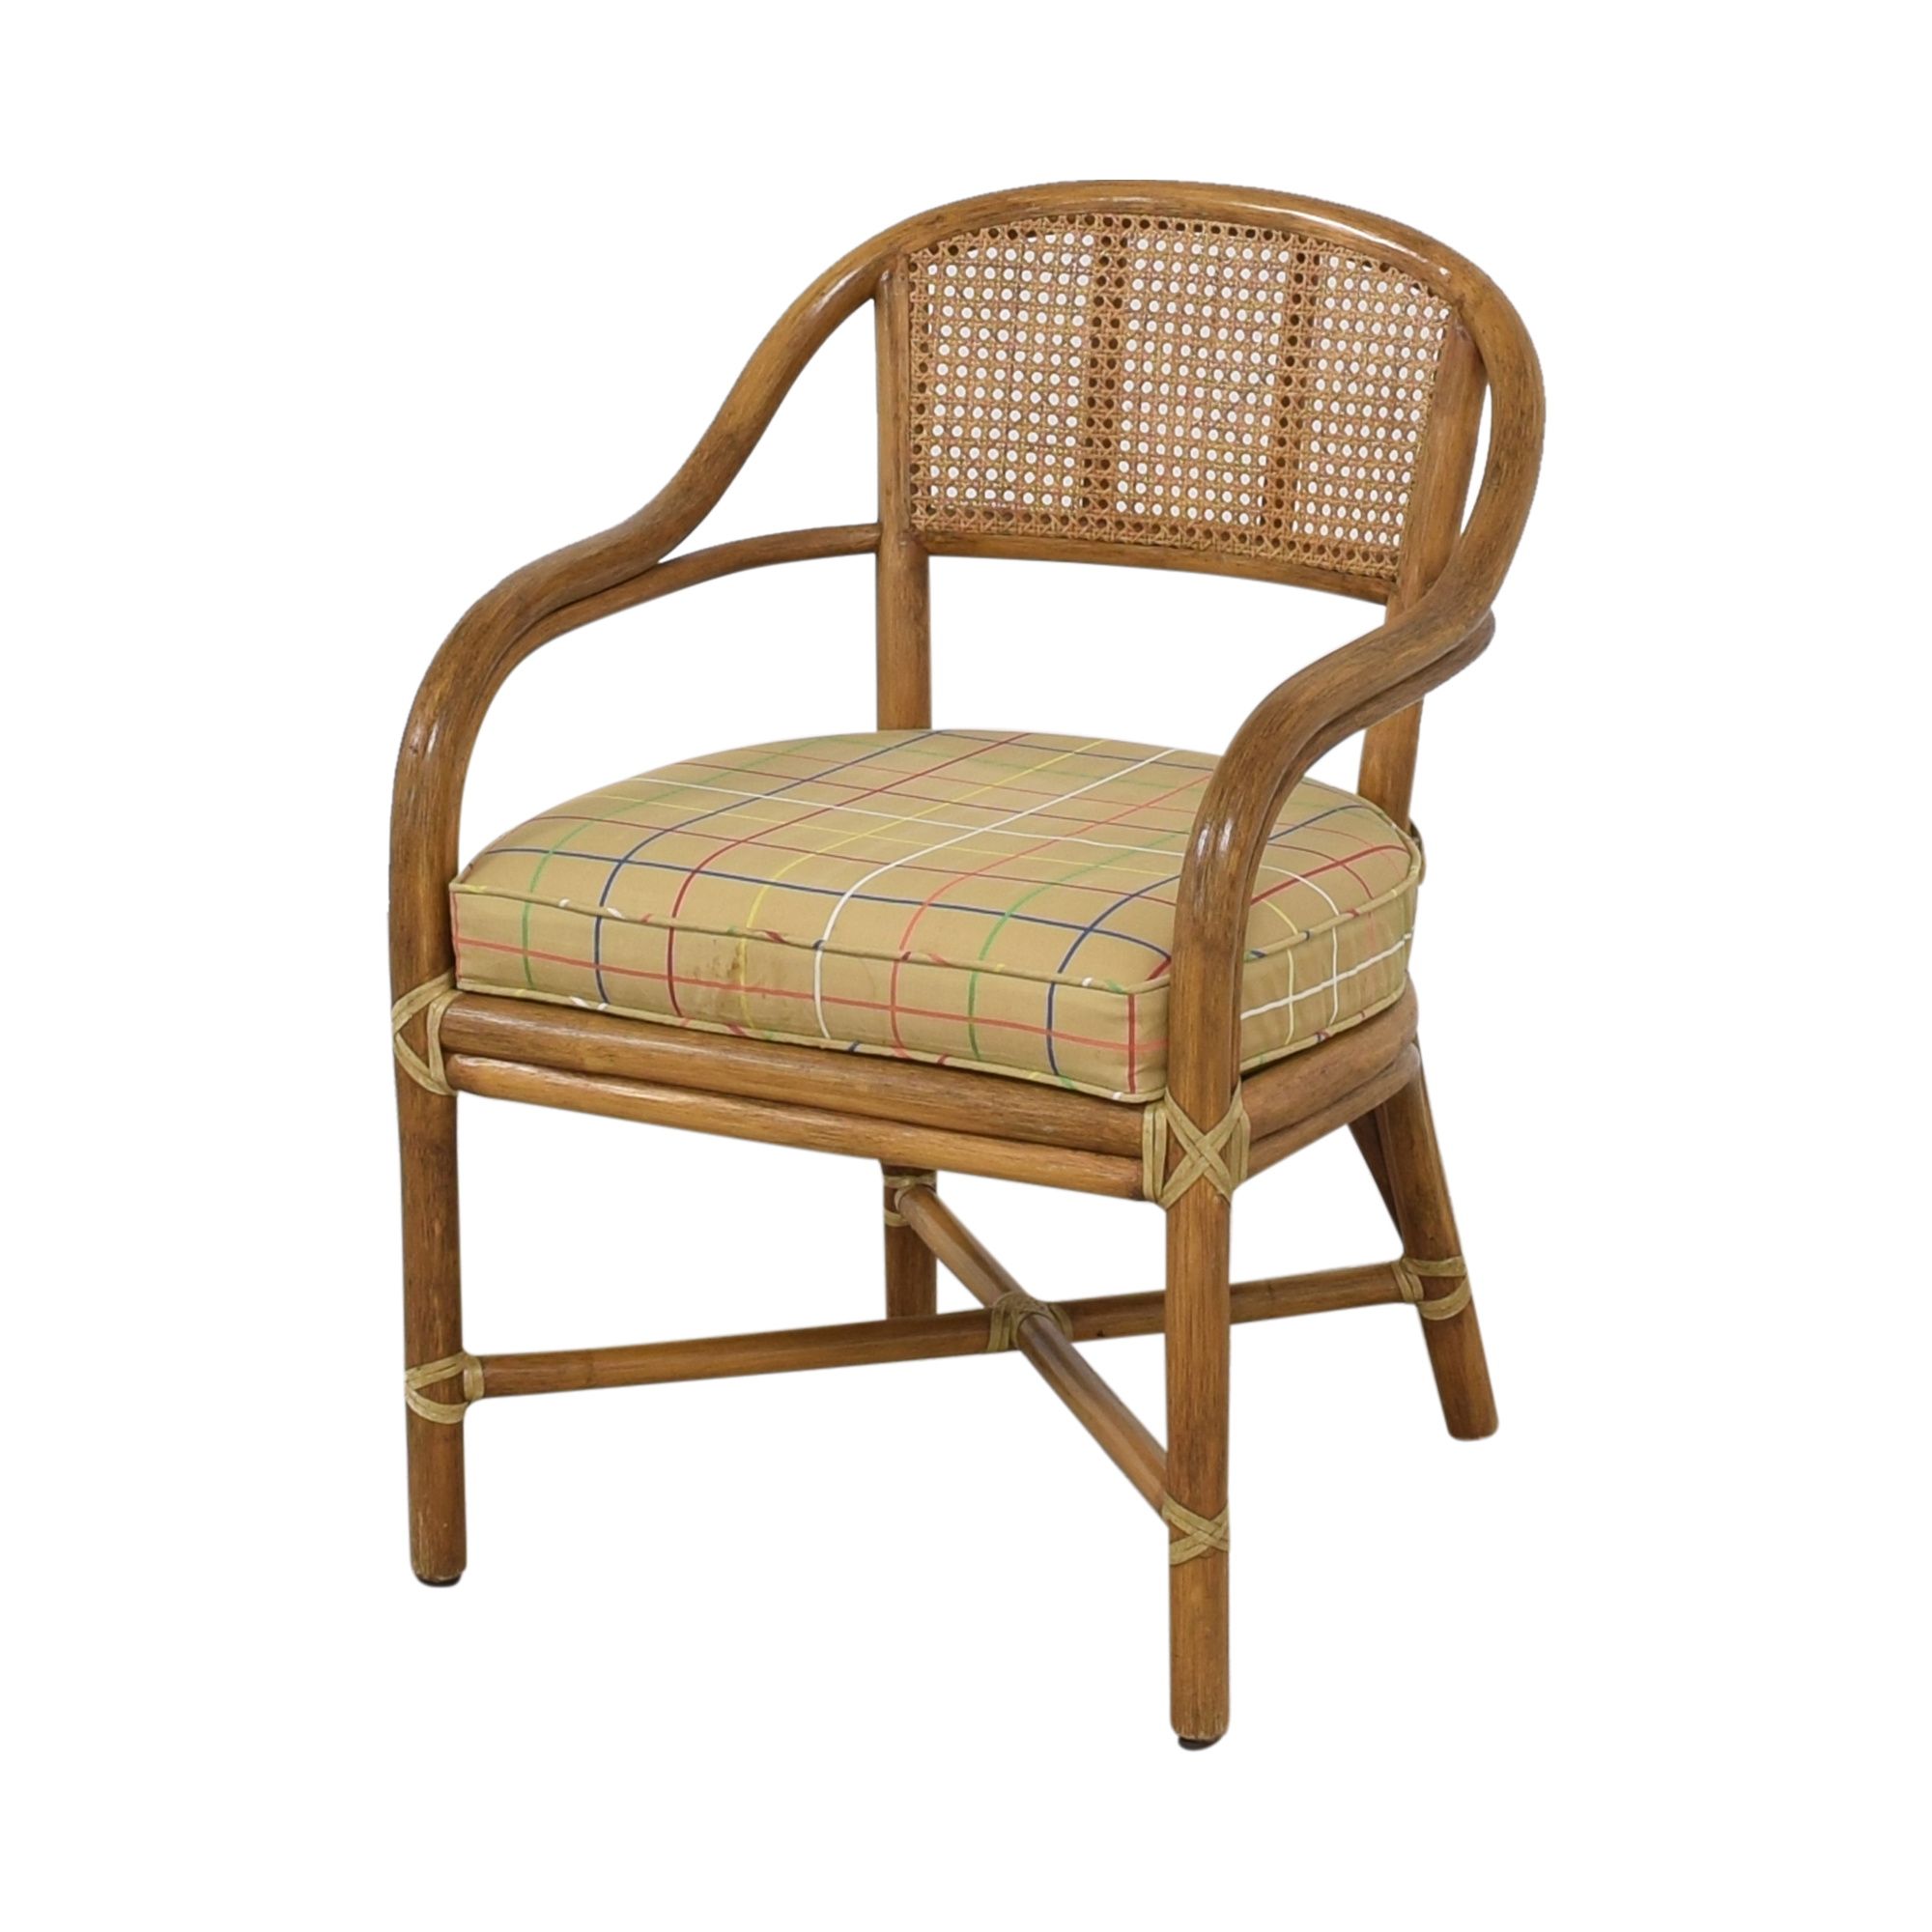 McGuire McGuire Wicker Dining Chairs second hand